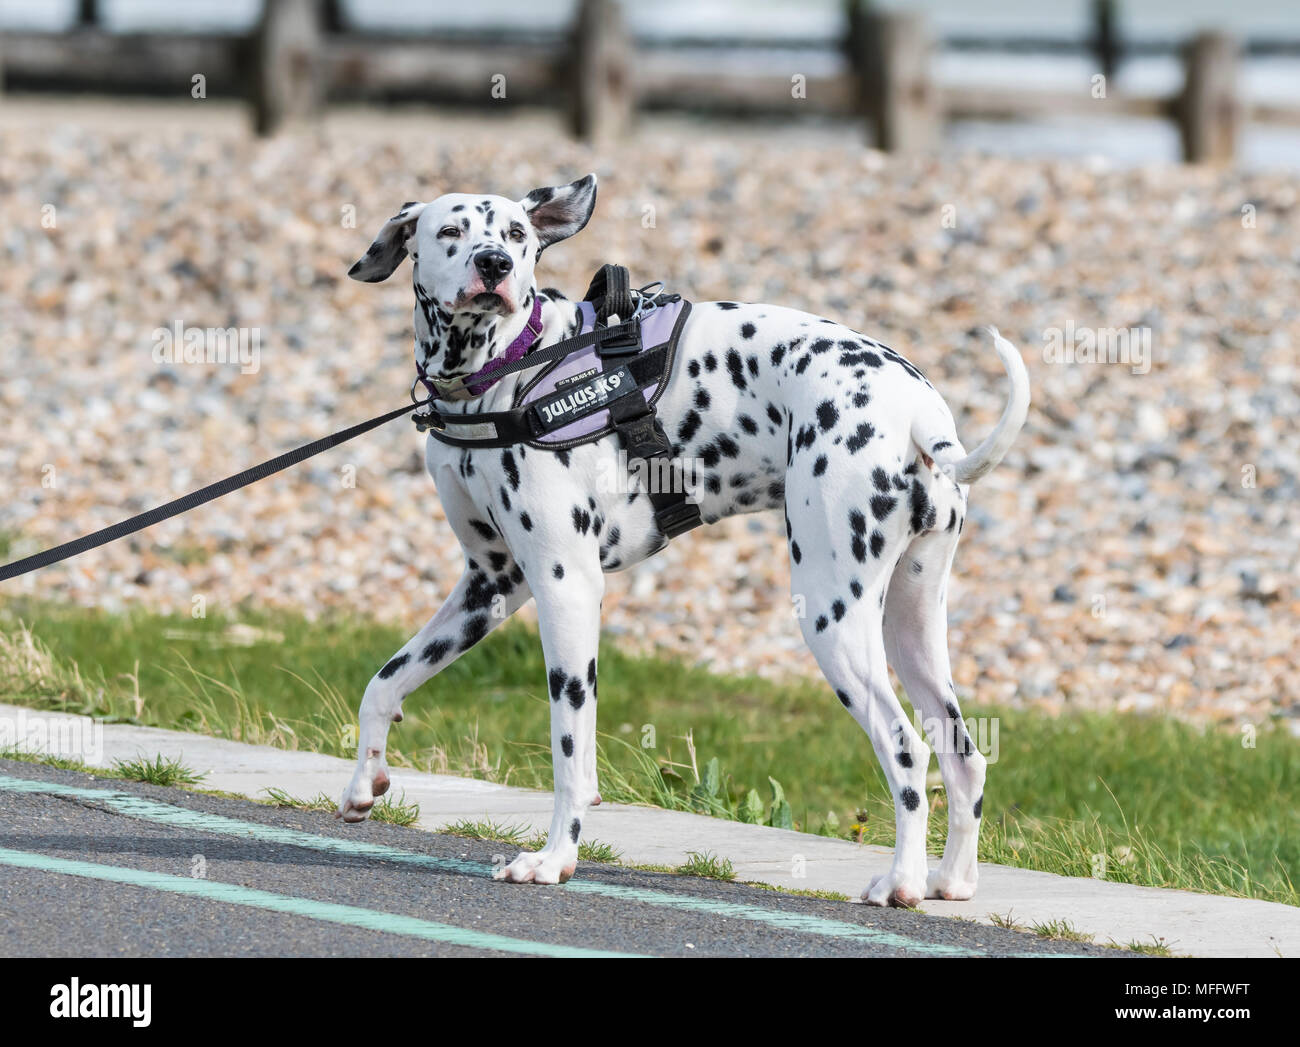 Large black and white spotted Dalmatian dog standing in the UK. - Stock Image